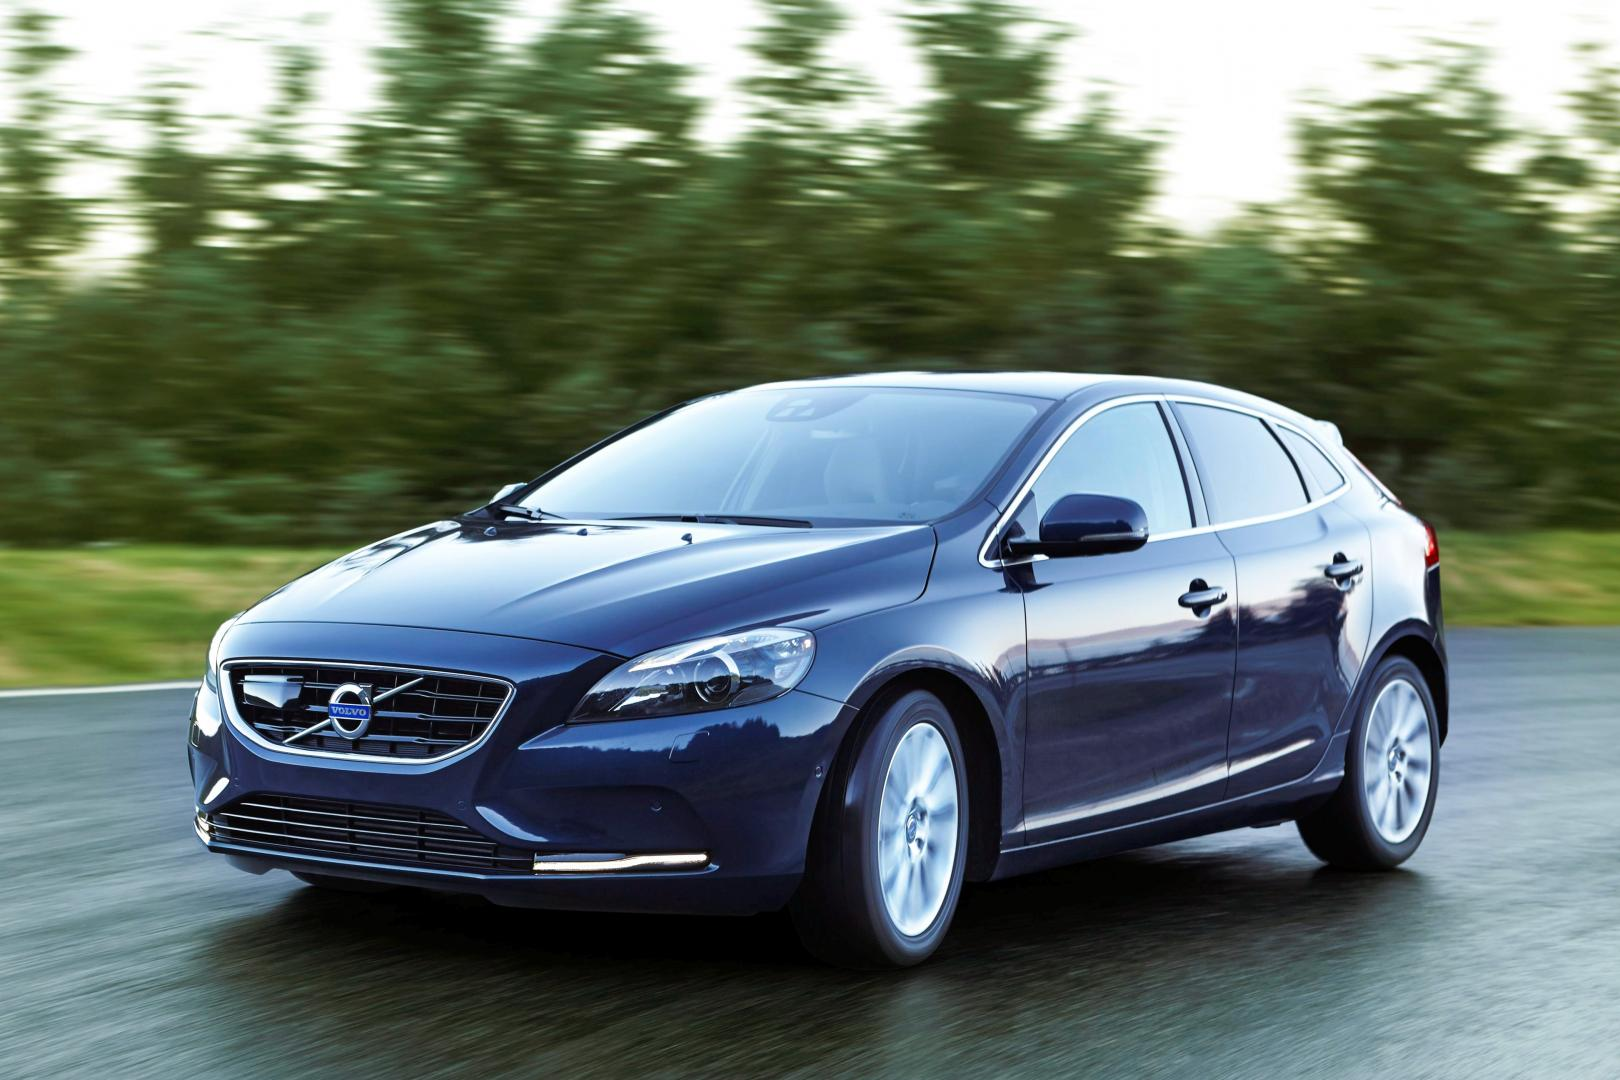 volvo v40 d4 business test en specificaties topgear nederland. Black Bedroom Furniture Sets. Home Design Ideas